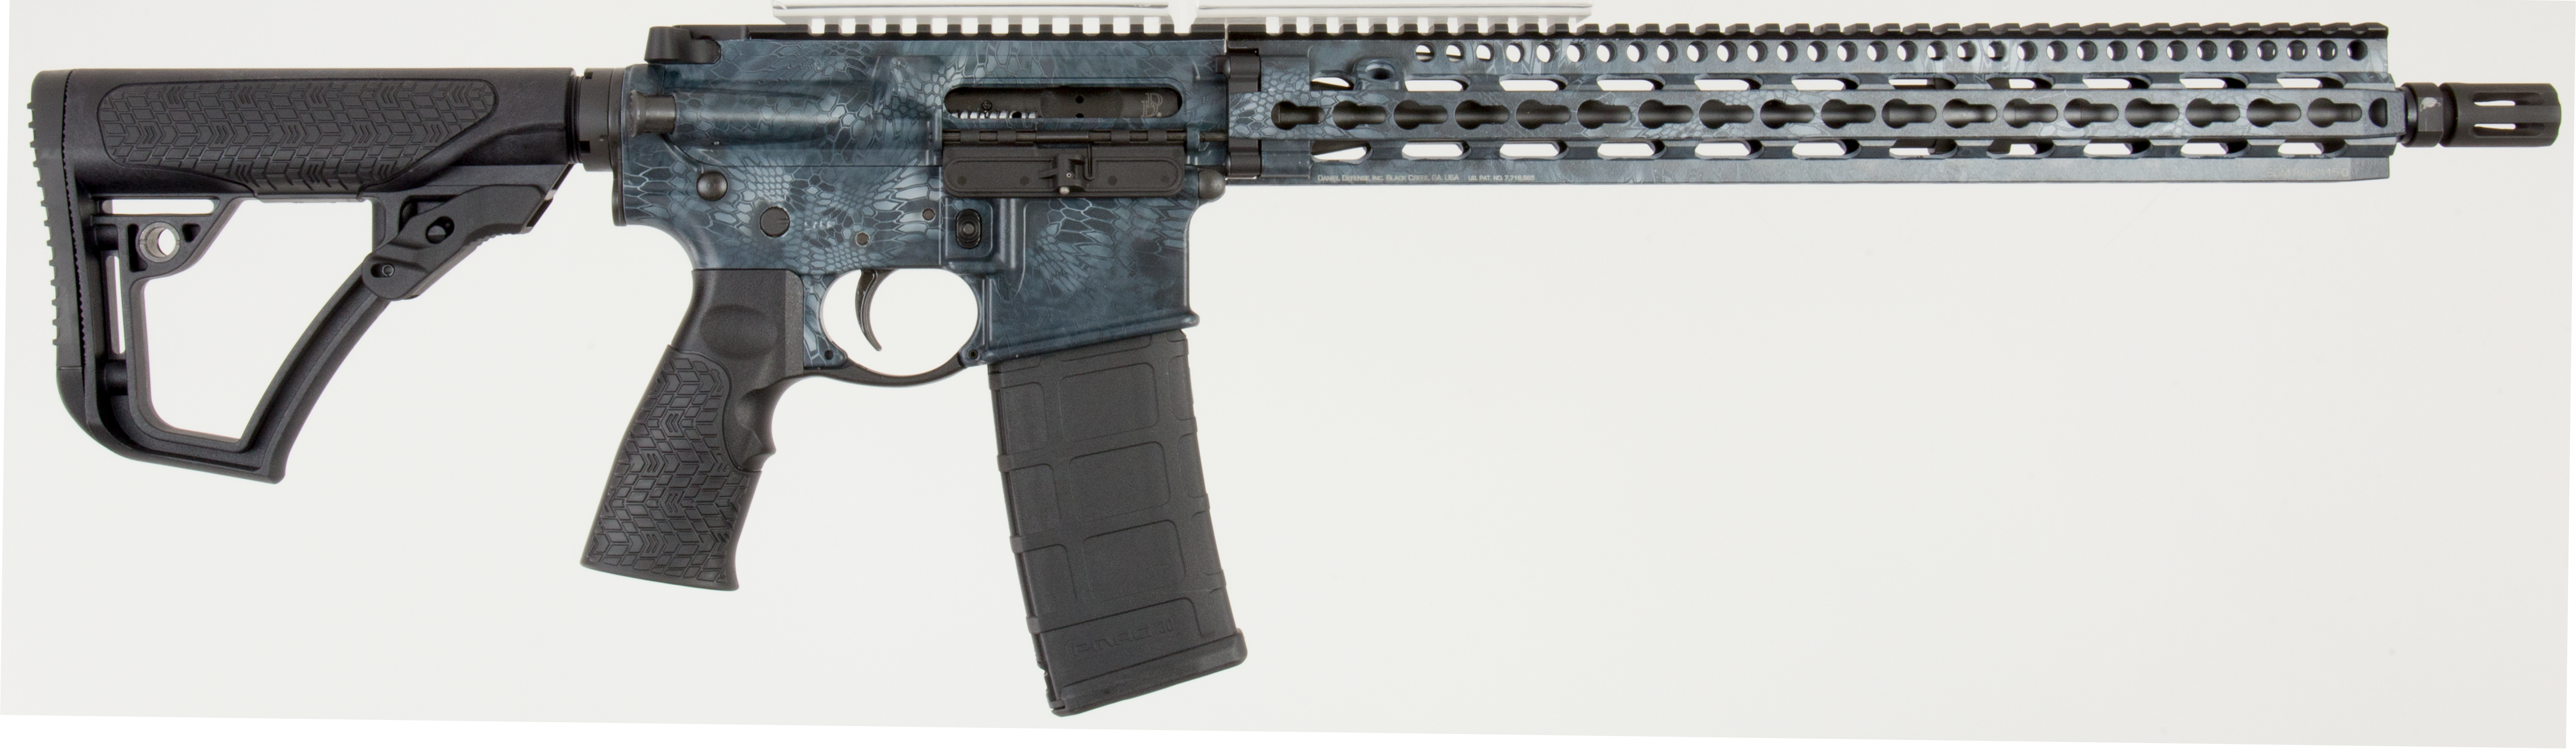 Daniel Defense 05148047 DDM4 V11 Semi-Automatic 223 Remington/5.56 NATO 16